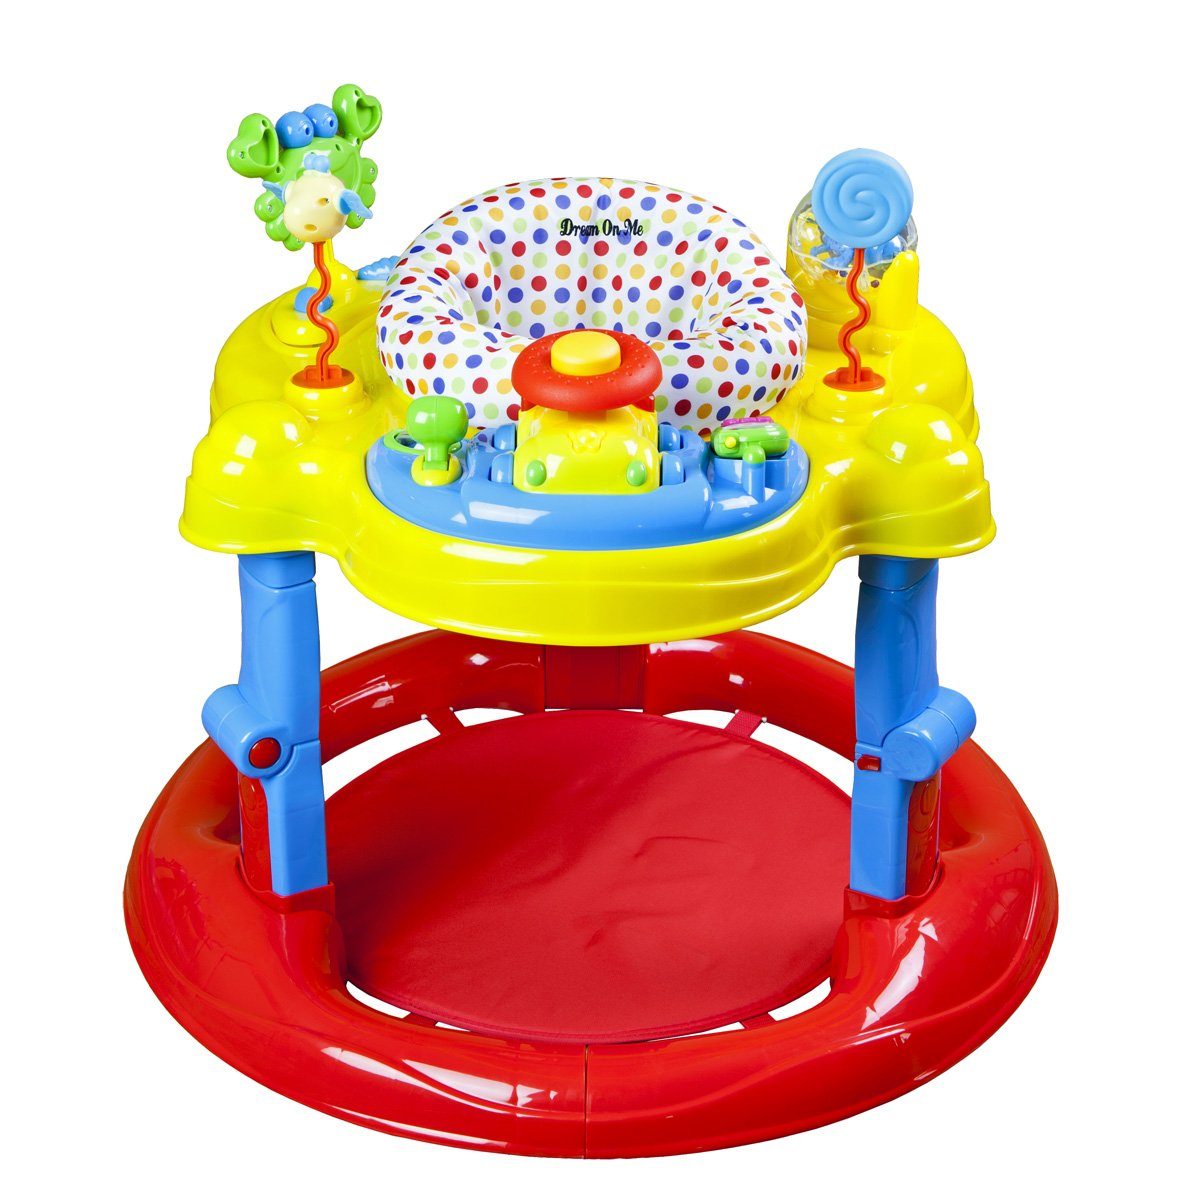 B00HB86DFU Dream On Me Spin Musical Activity Center Red 71jUwXKmhoL._SL1200_